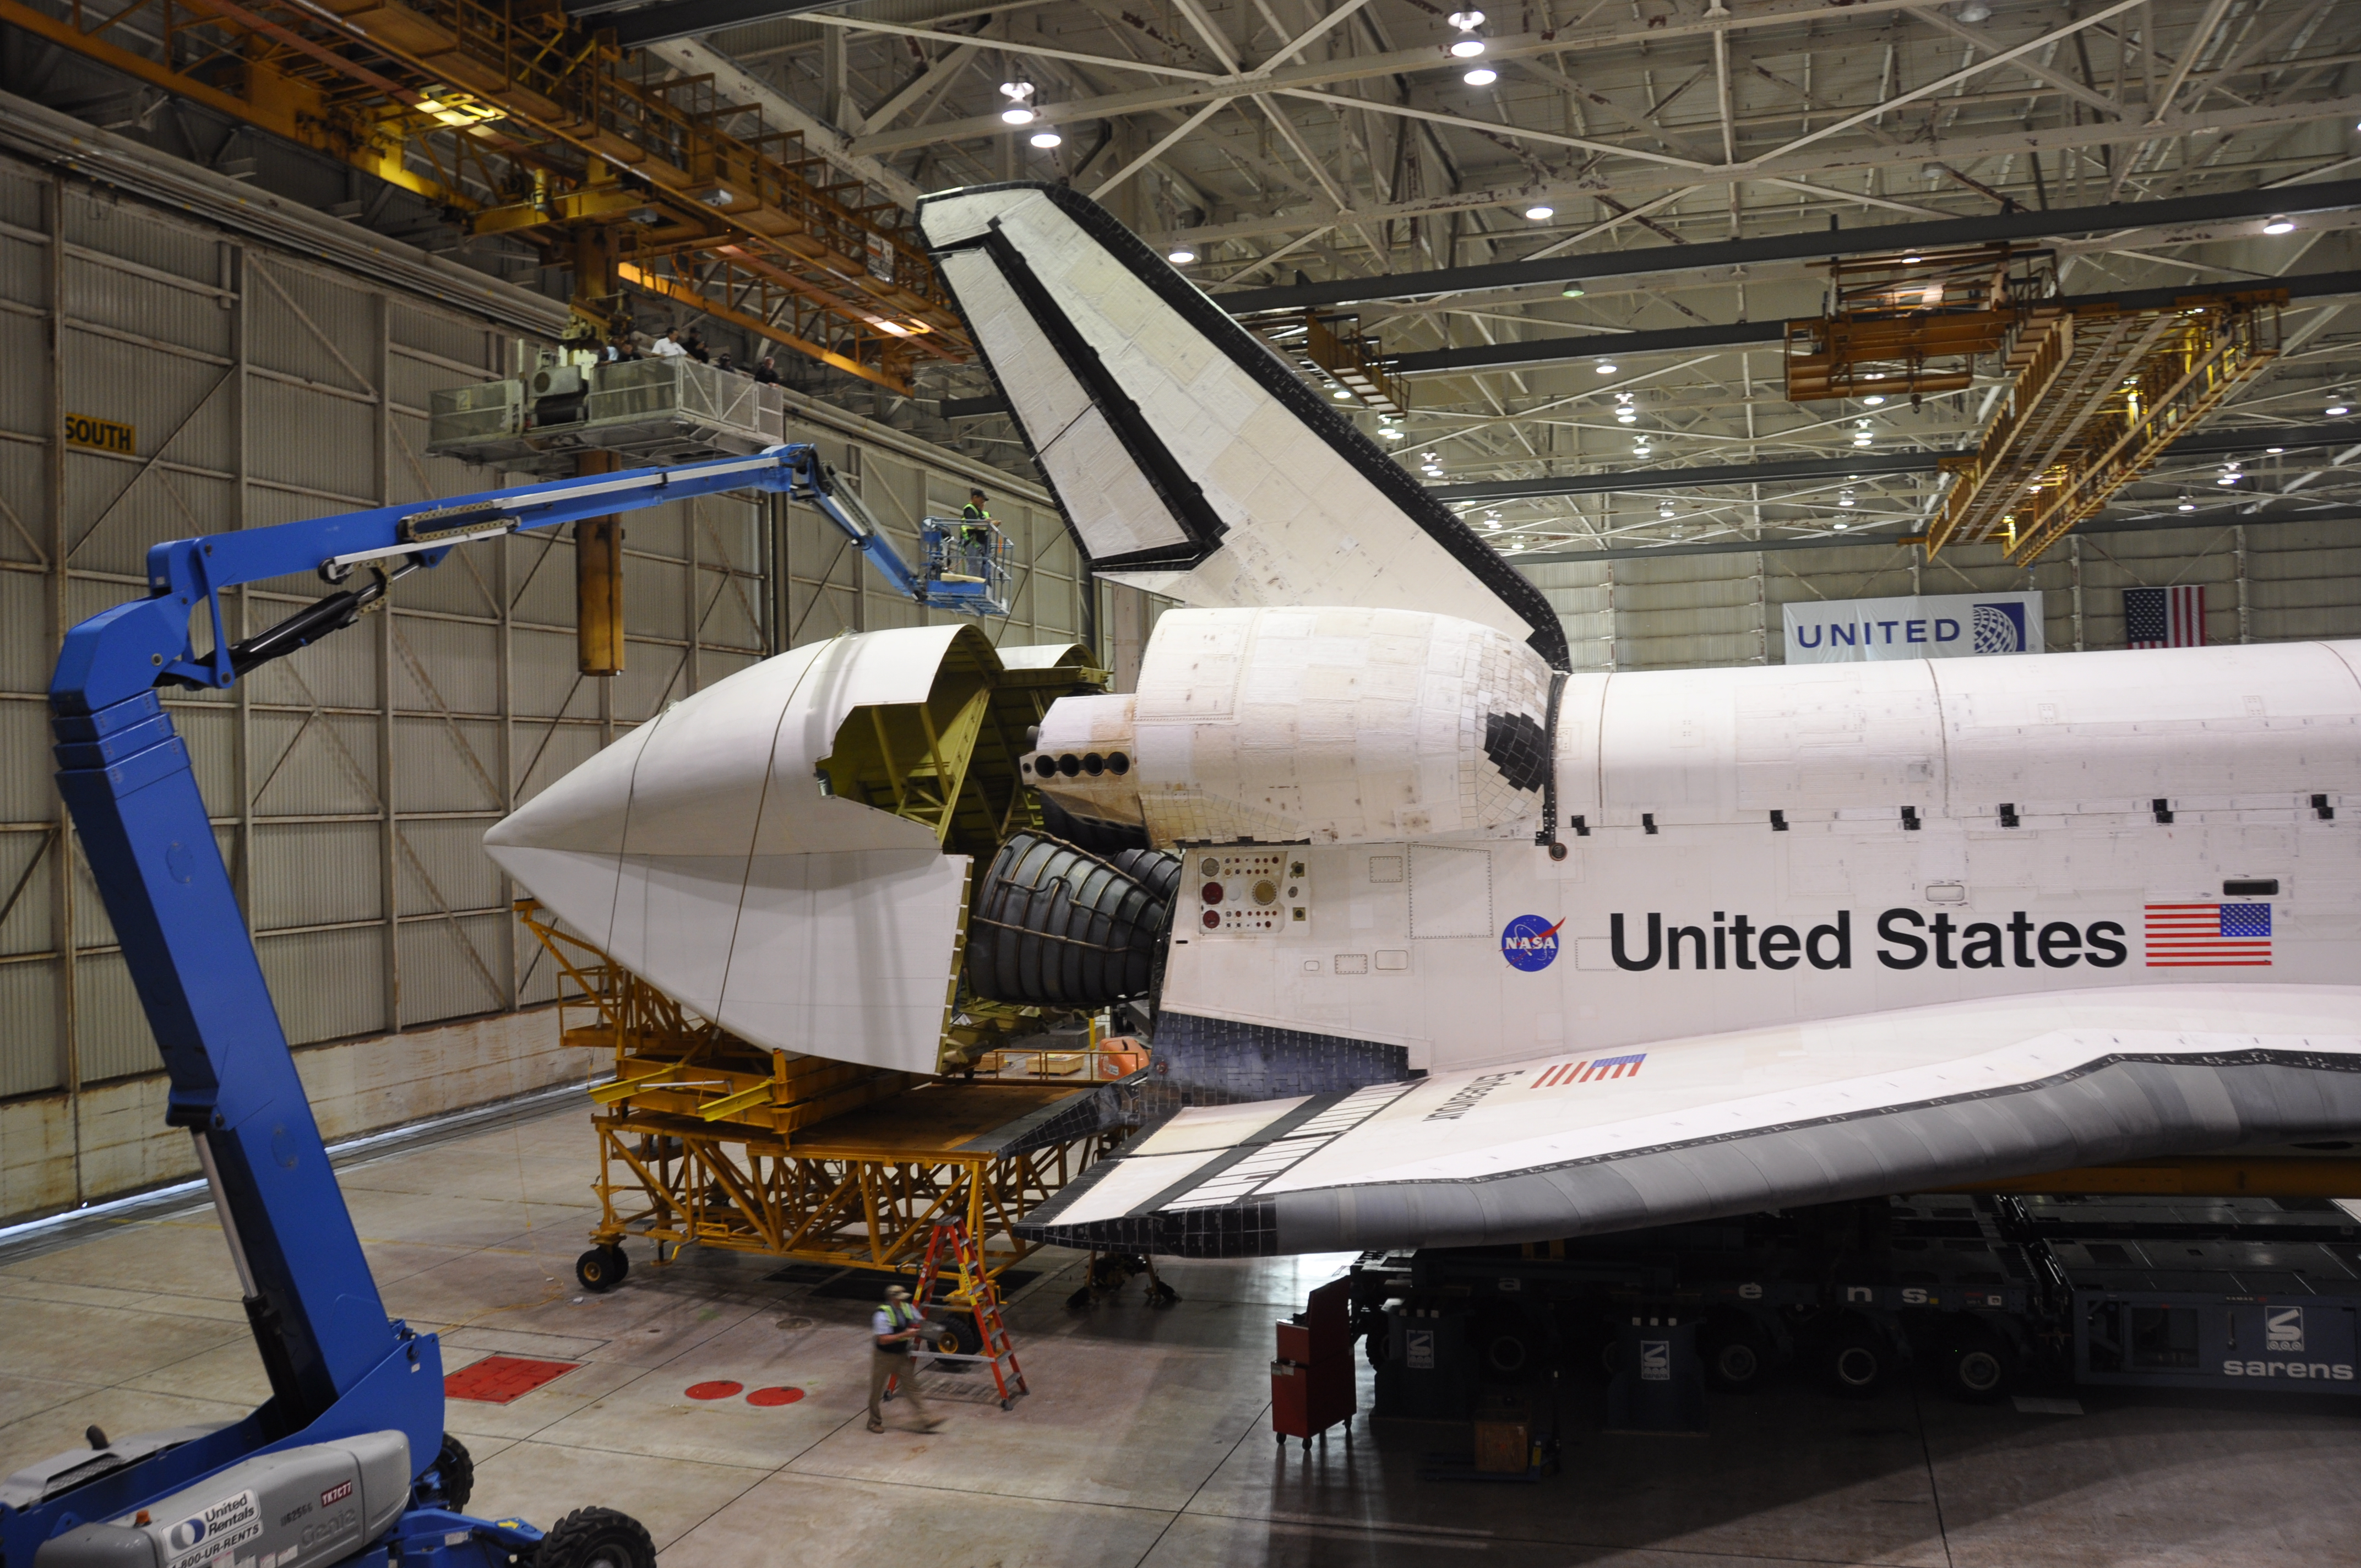 real space shuttle in milwuakee - photo #15